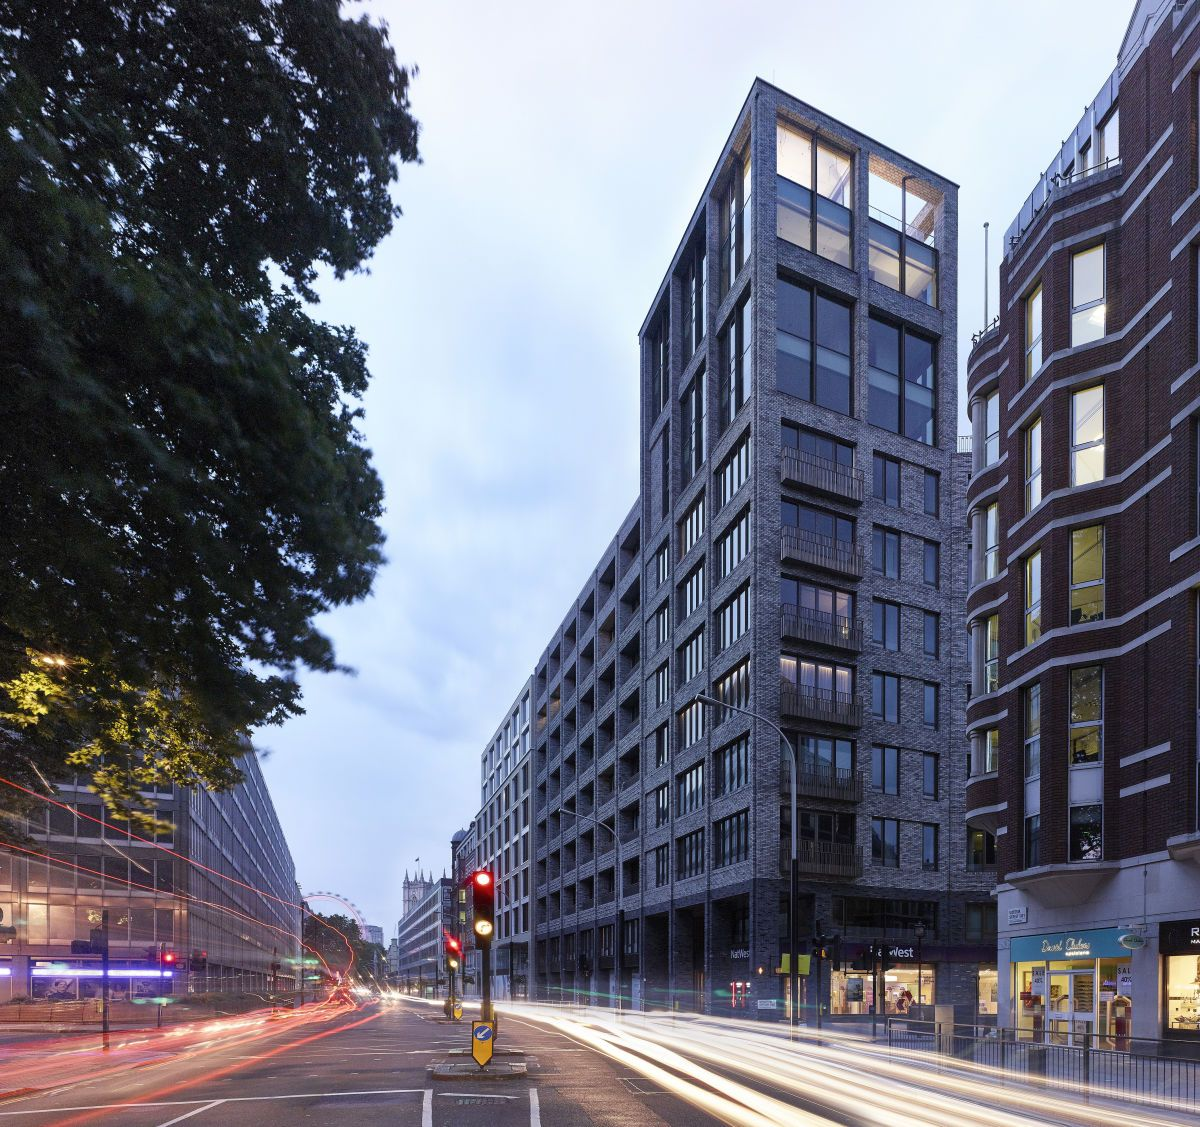 Remodelling Of An Existing Office Block Into Luxury, 'New